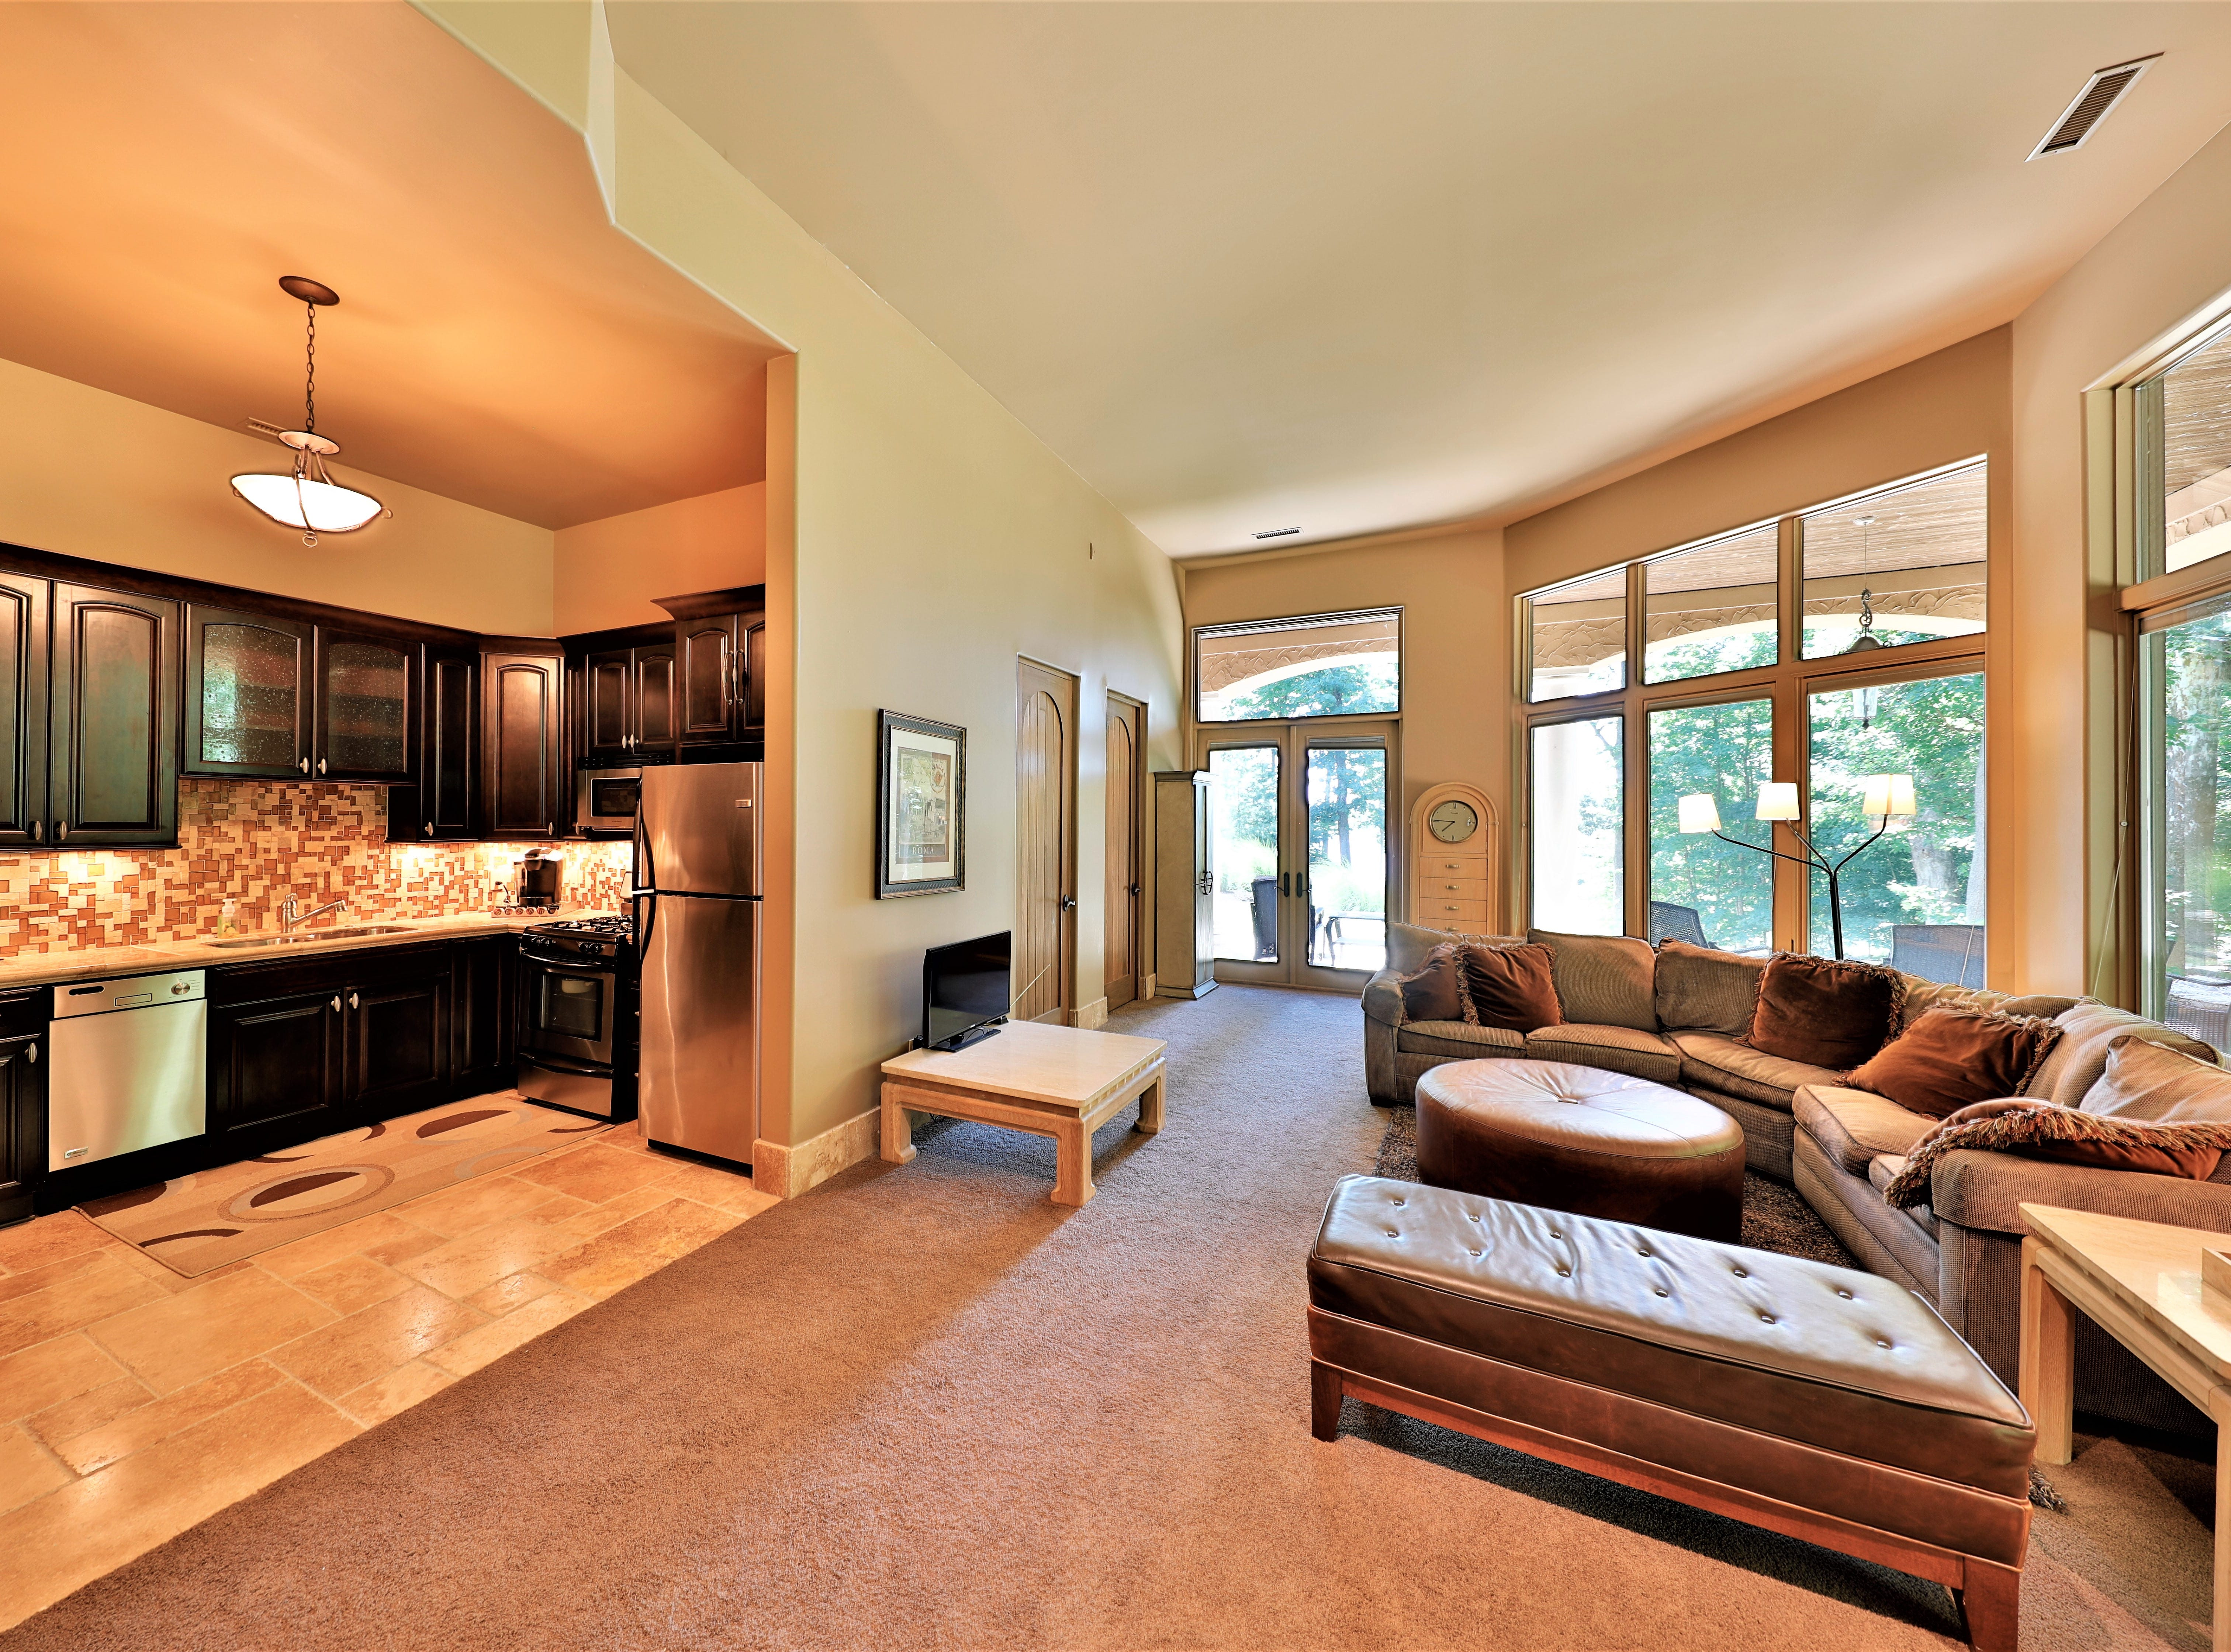 The basement suite includes a full kitchen, living area, bathroom and eating area.